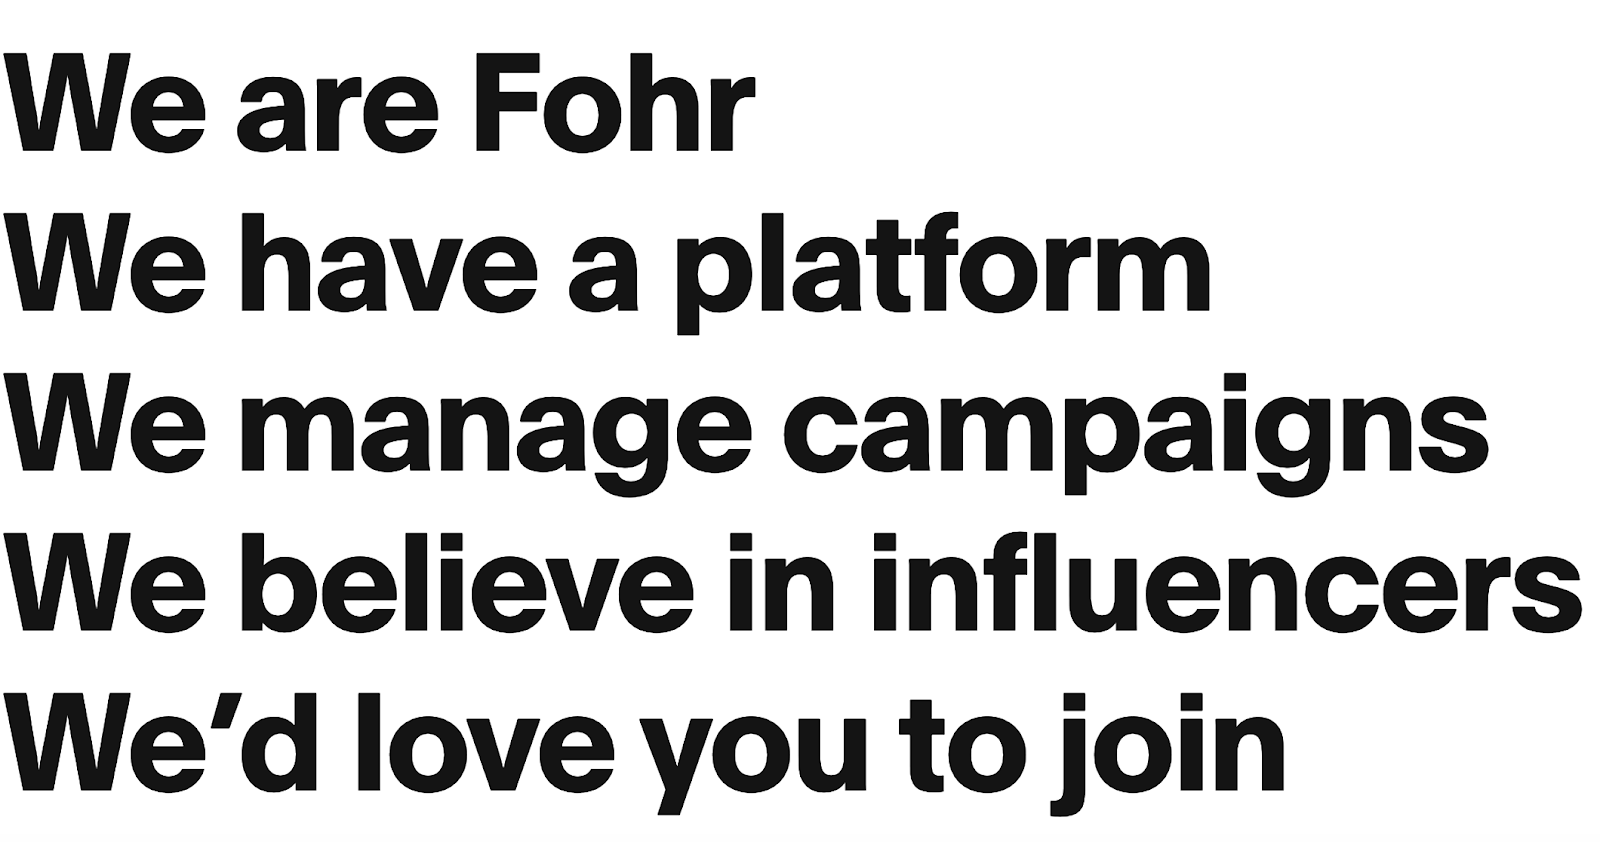 We Are Fohr - Influencer Marketing Platform